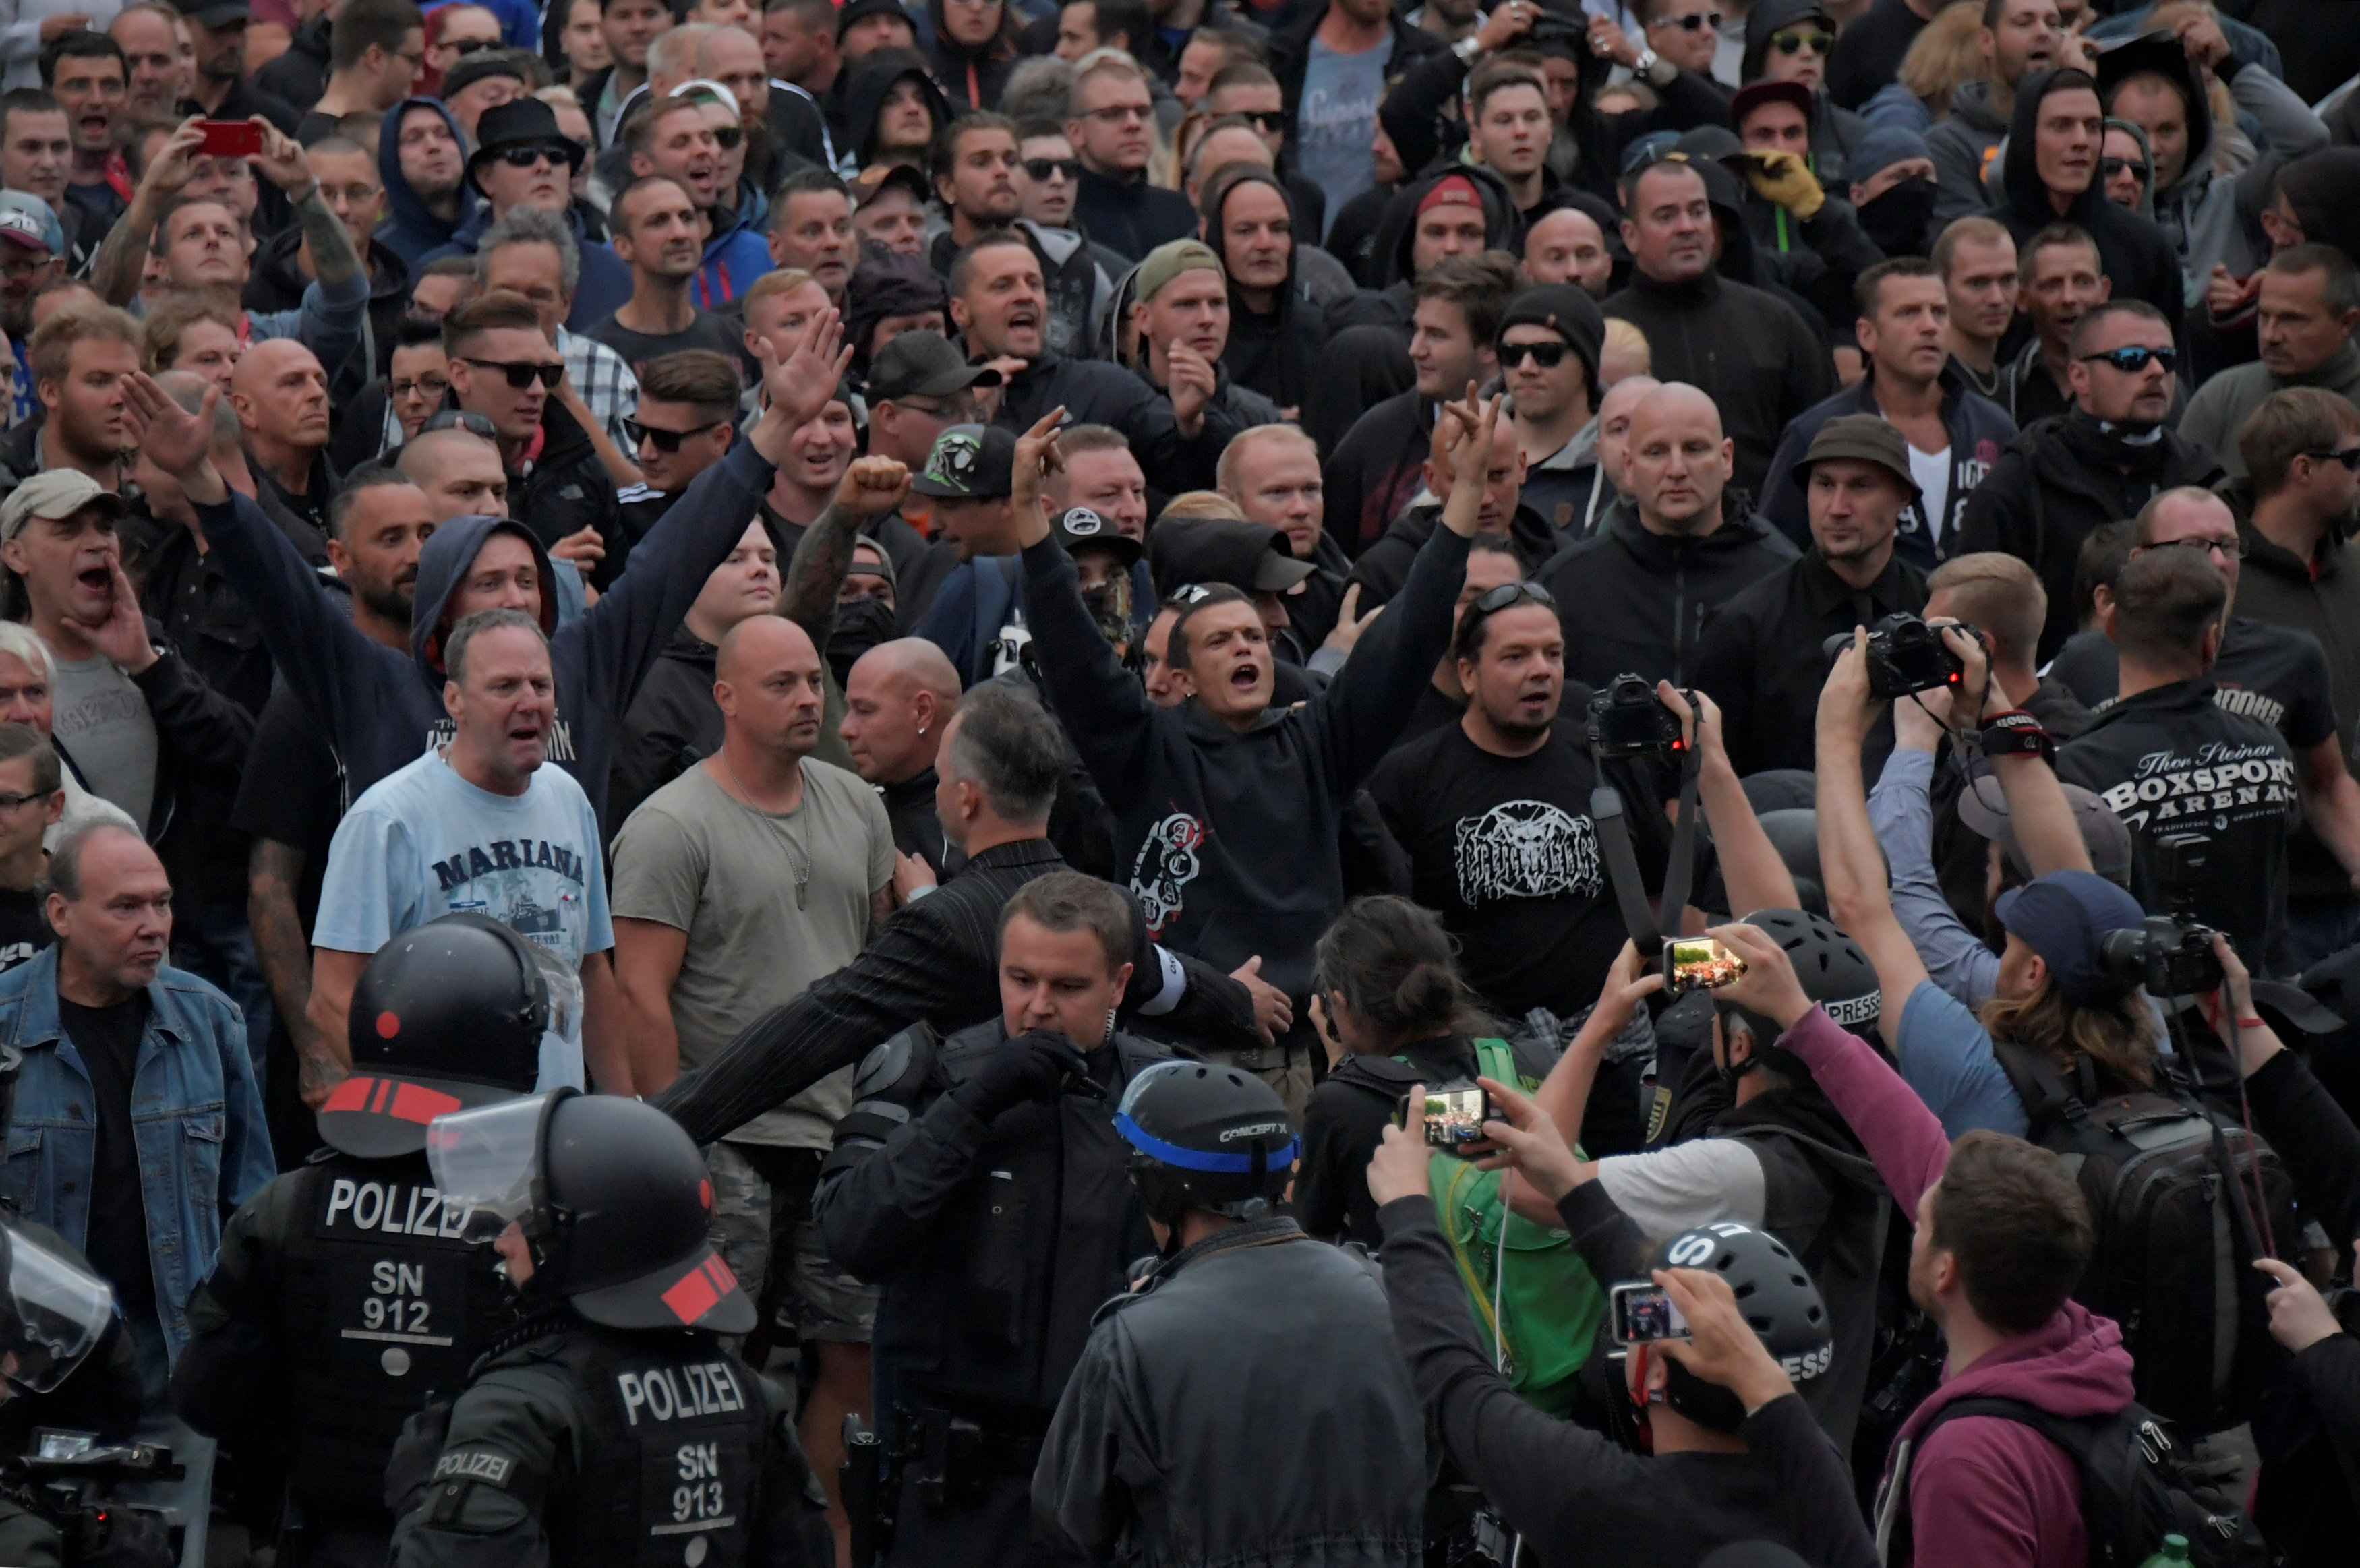 Right-wing supporters protest after a German man was stabbed last weekend in Chemnitz